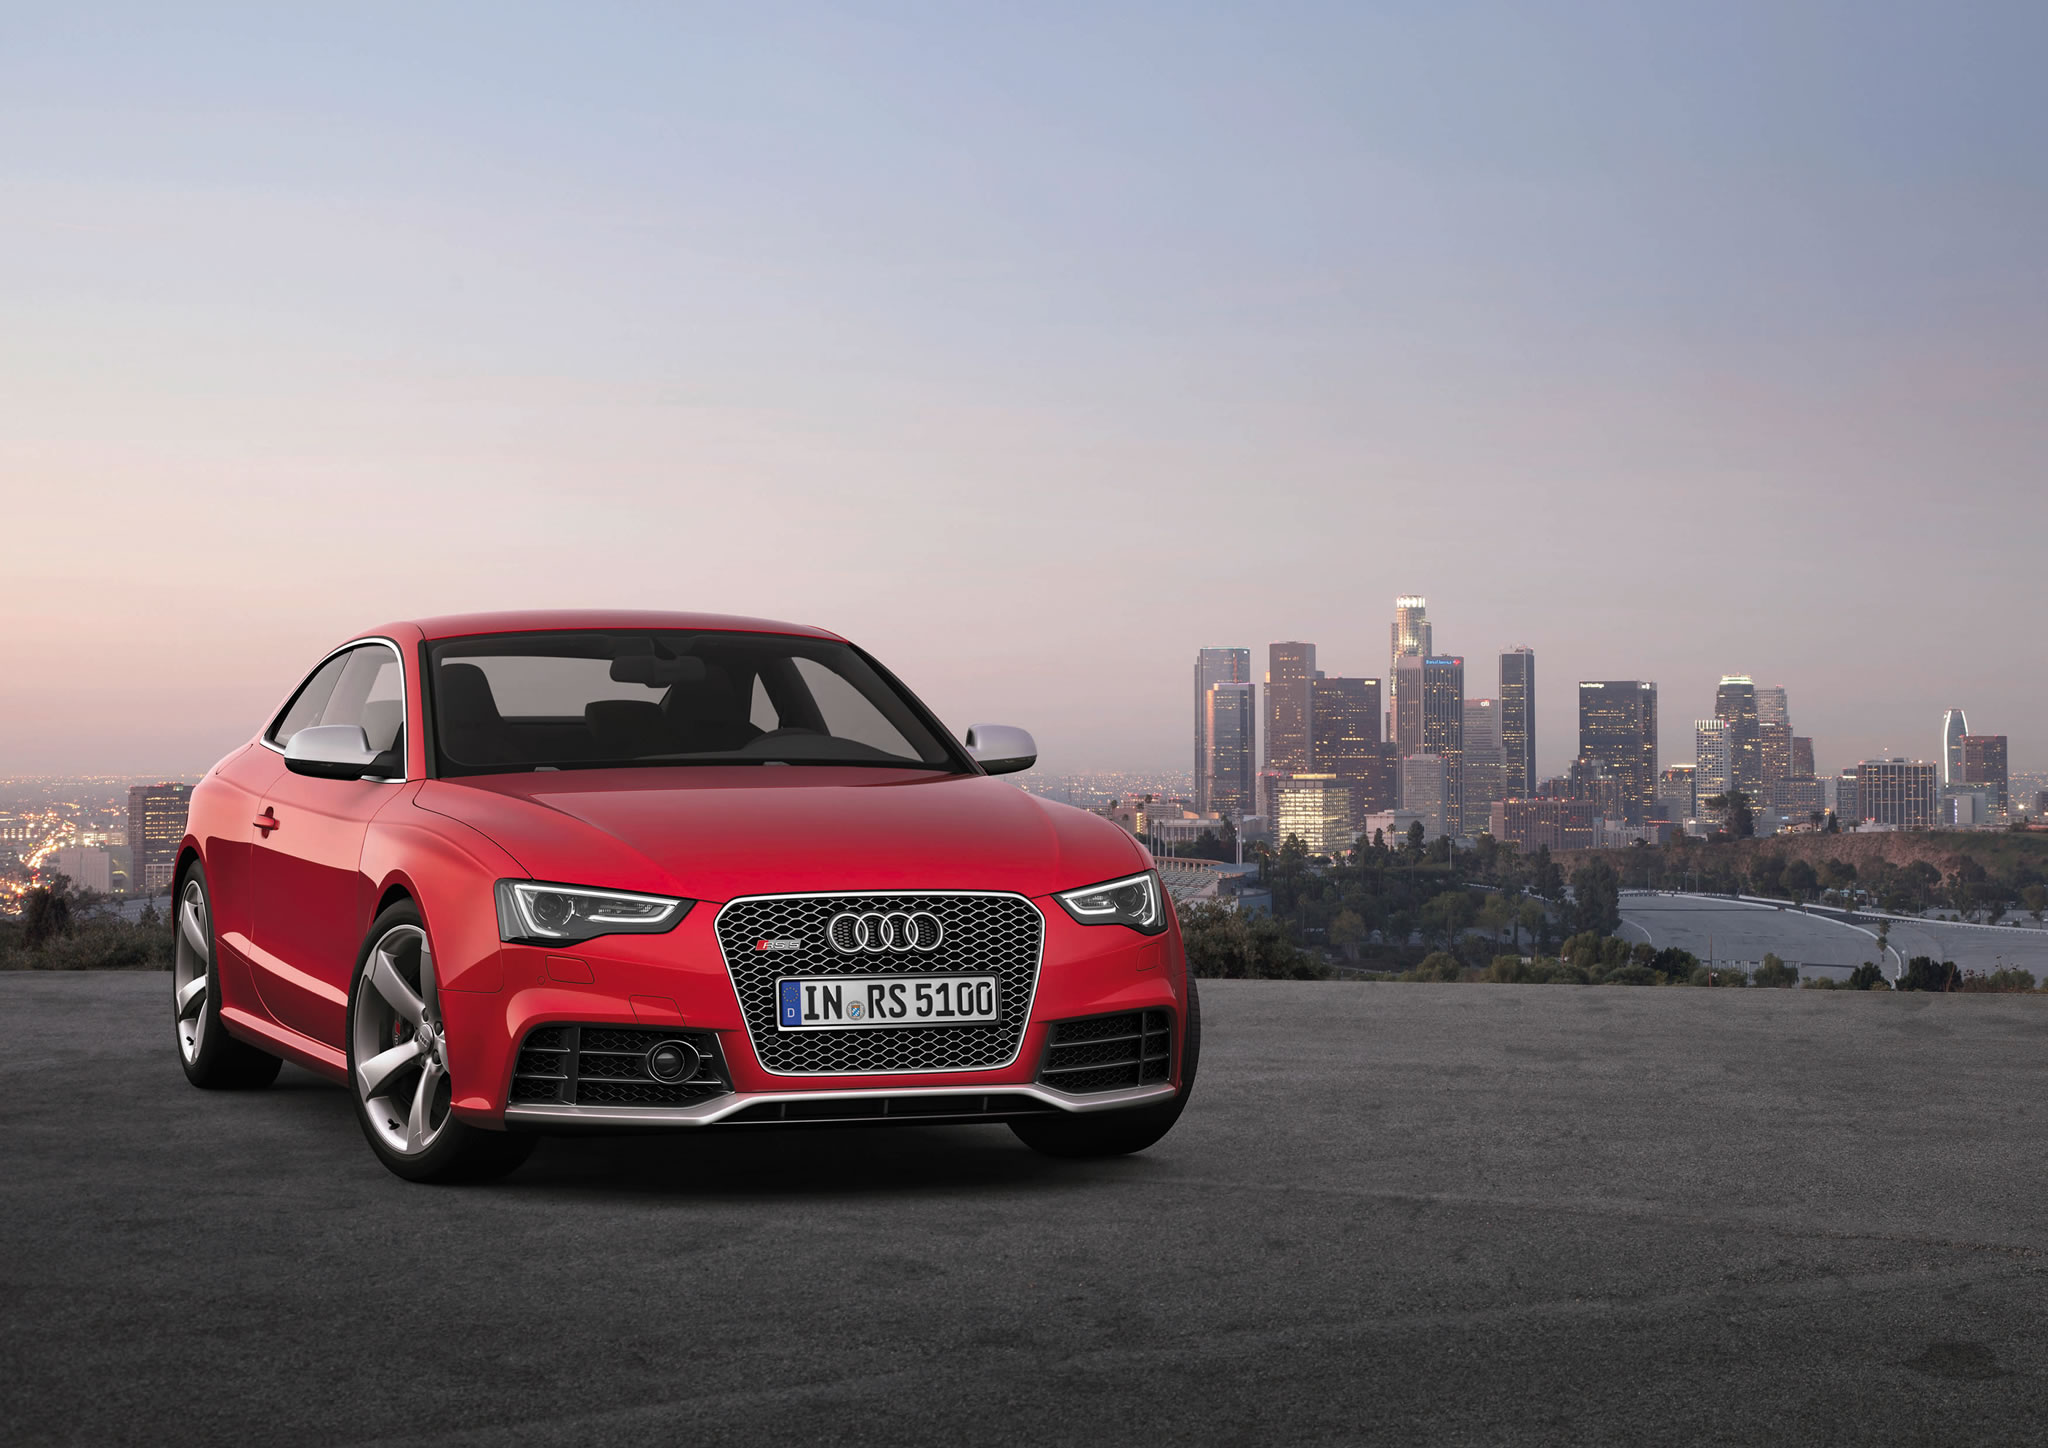 2014 audi rs 5 coupe front photo misano red color city in background size 2048 x 1448 nr. Black Bedroom Furniture Sets. Home Design Ideas